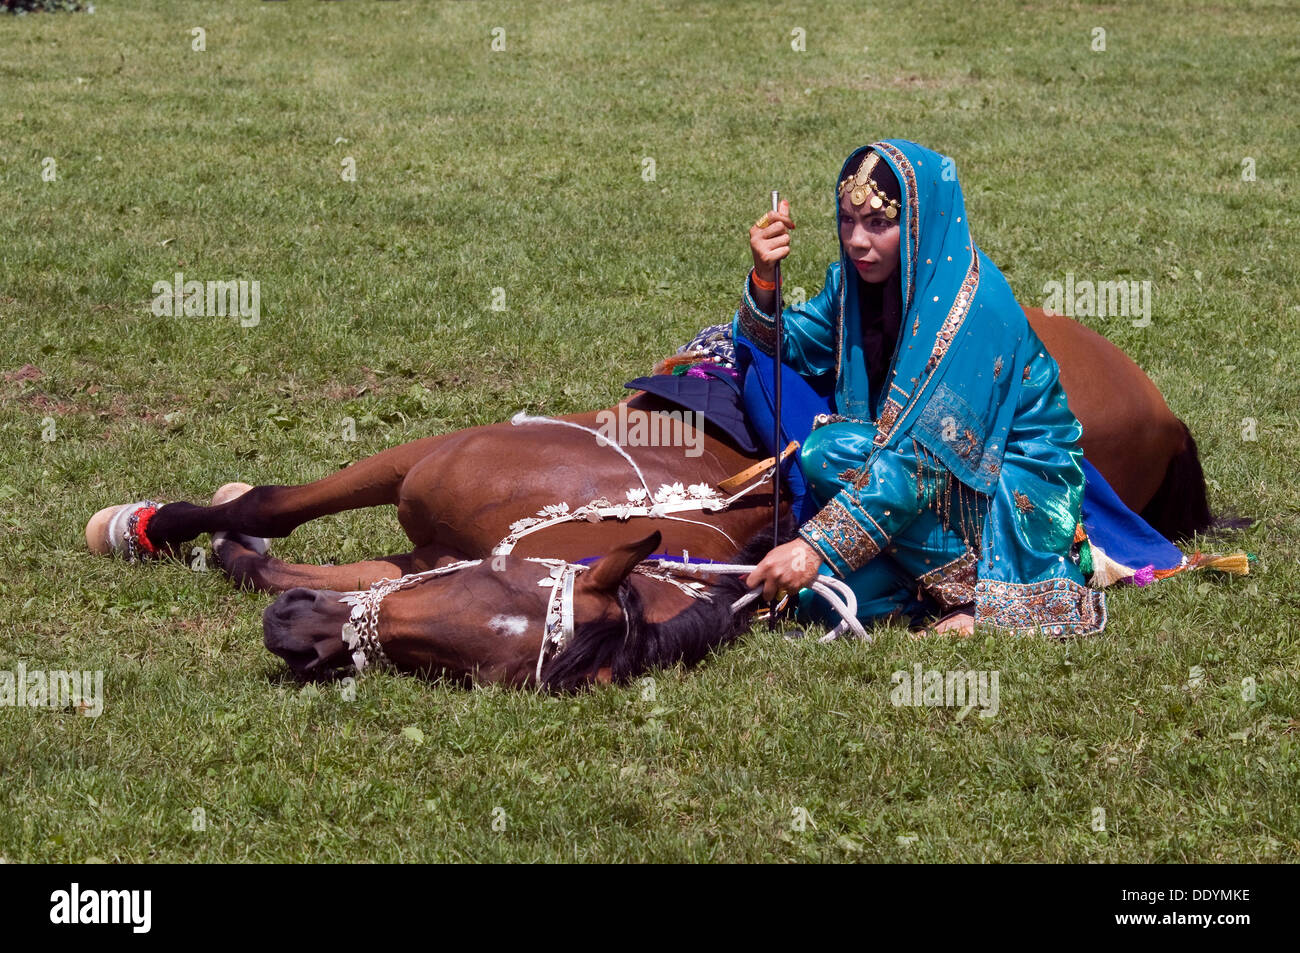 Rider of the Royal Cavalry of Oman at the international horse show, Pferd International Munich, demonstrating the obedience of - Stock Image